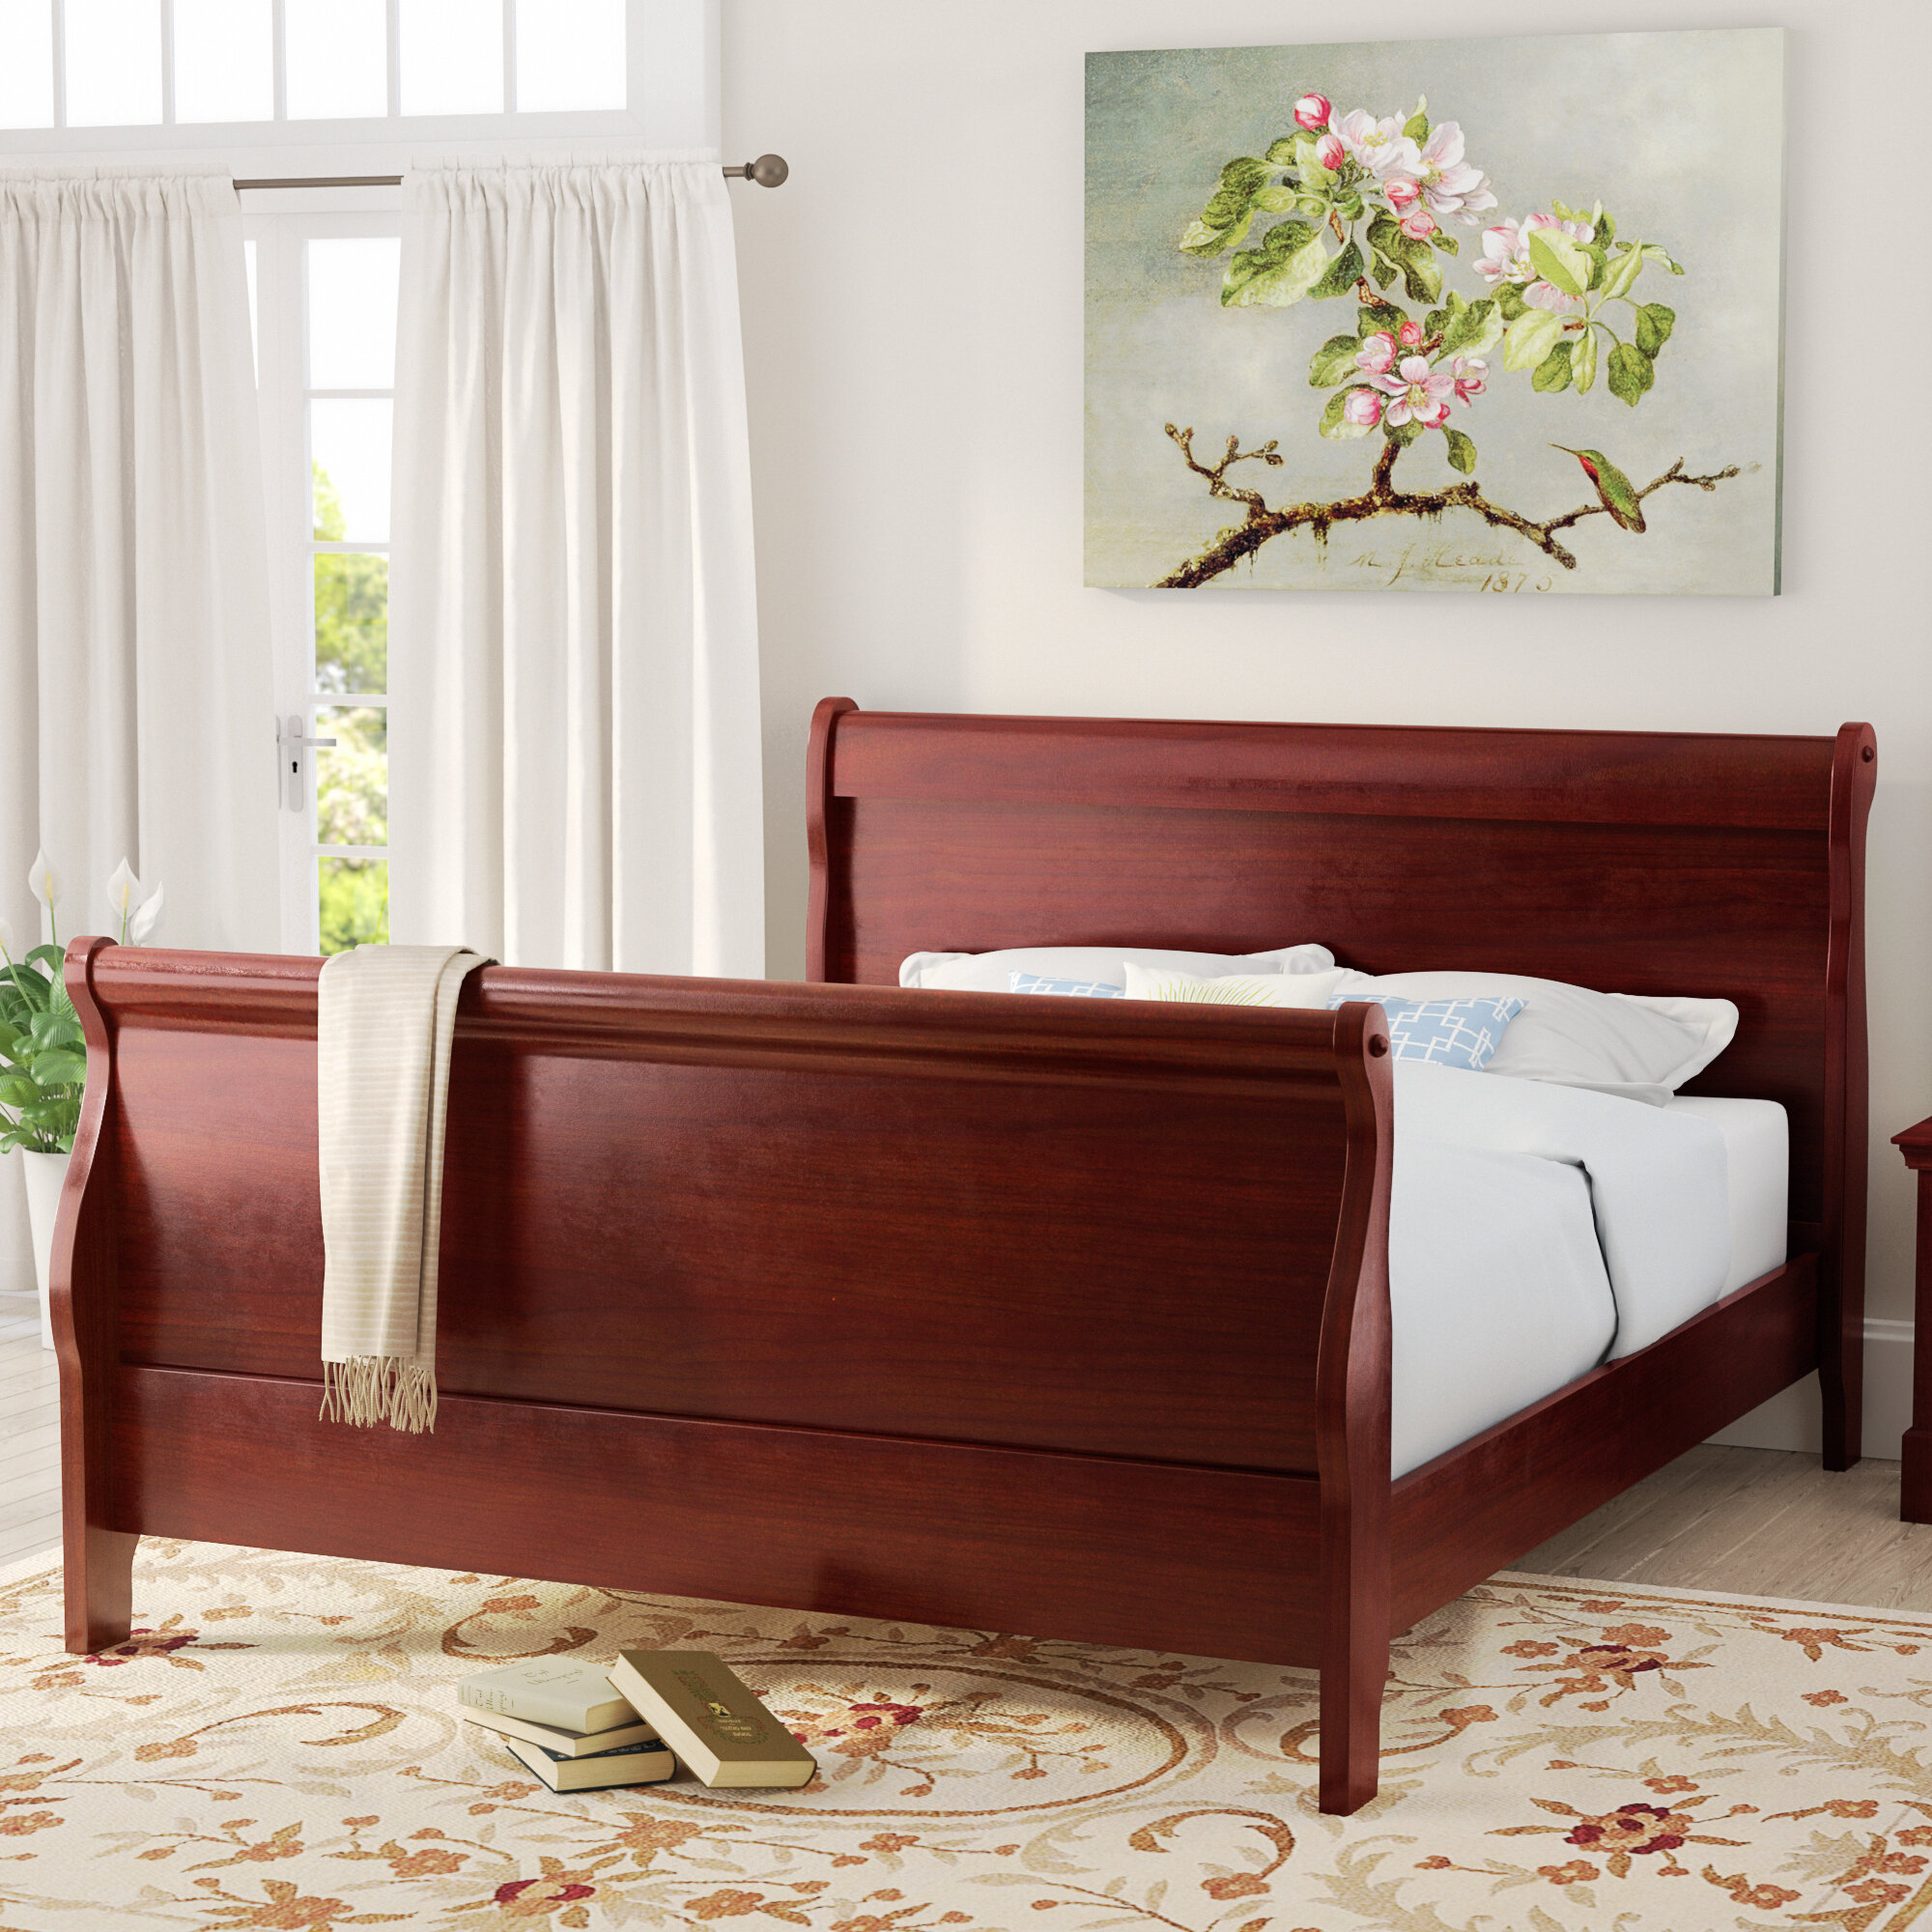 s court phyl carriage by sleigh furniture liberty bed beds bernie